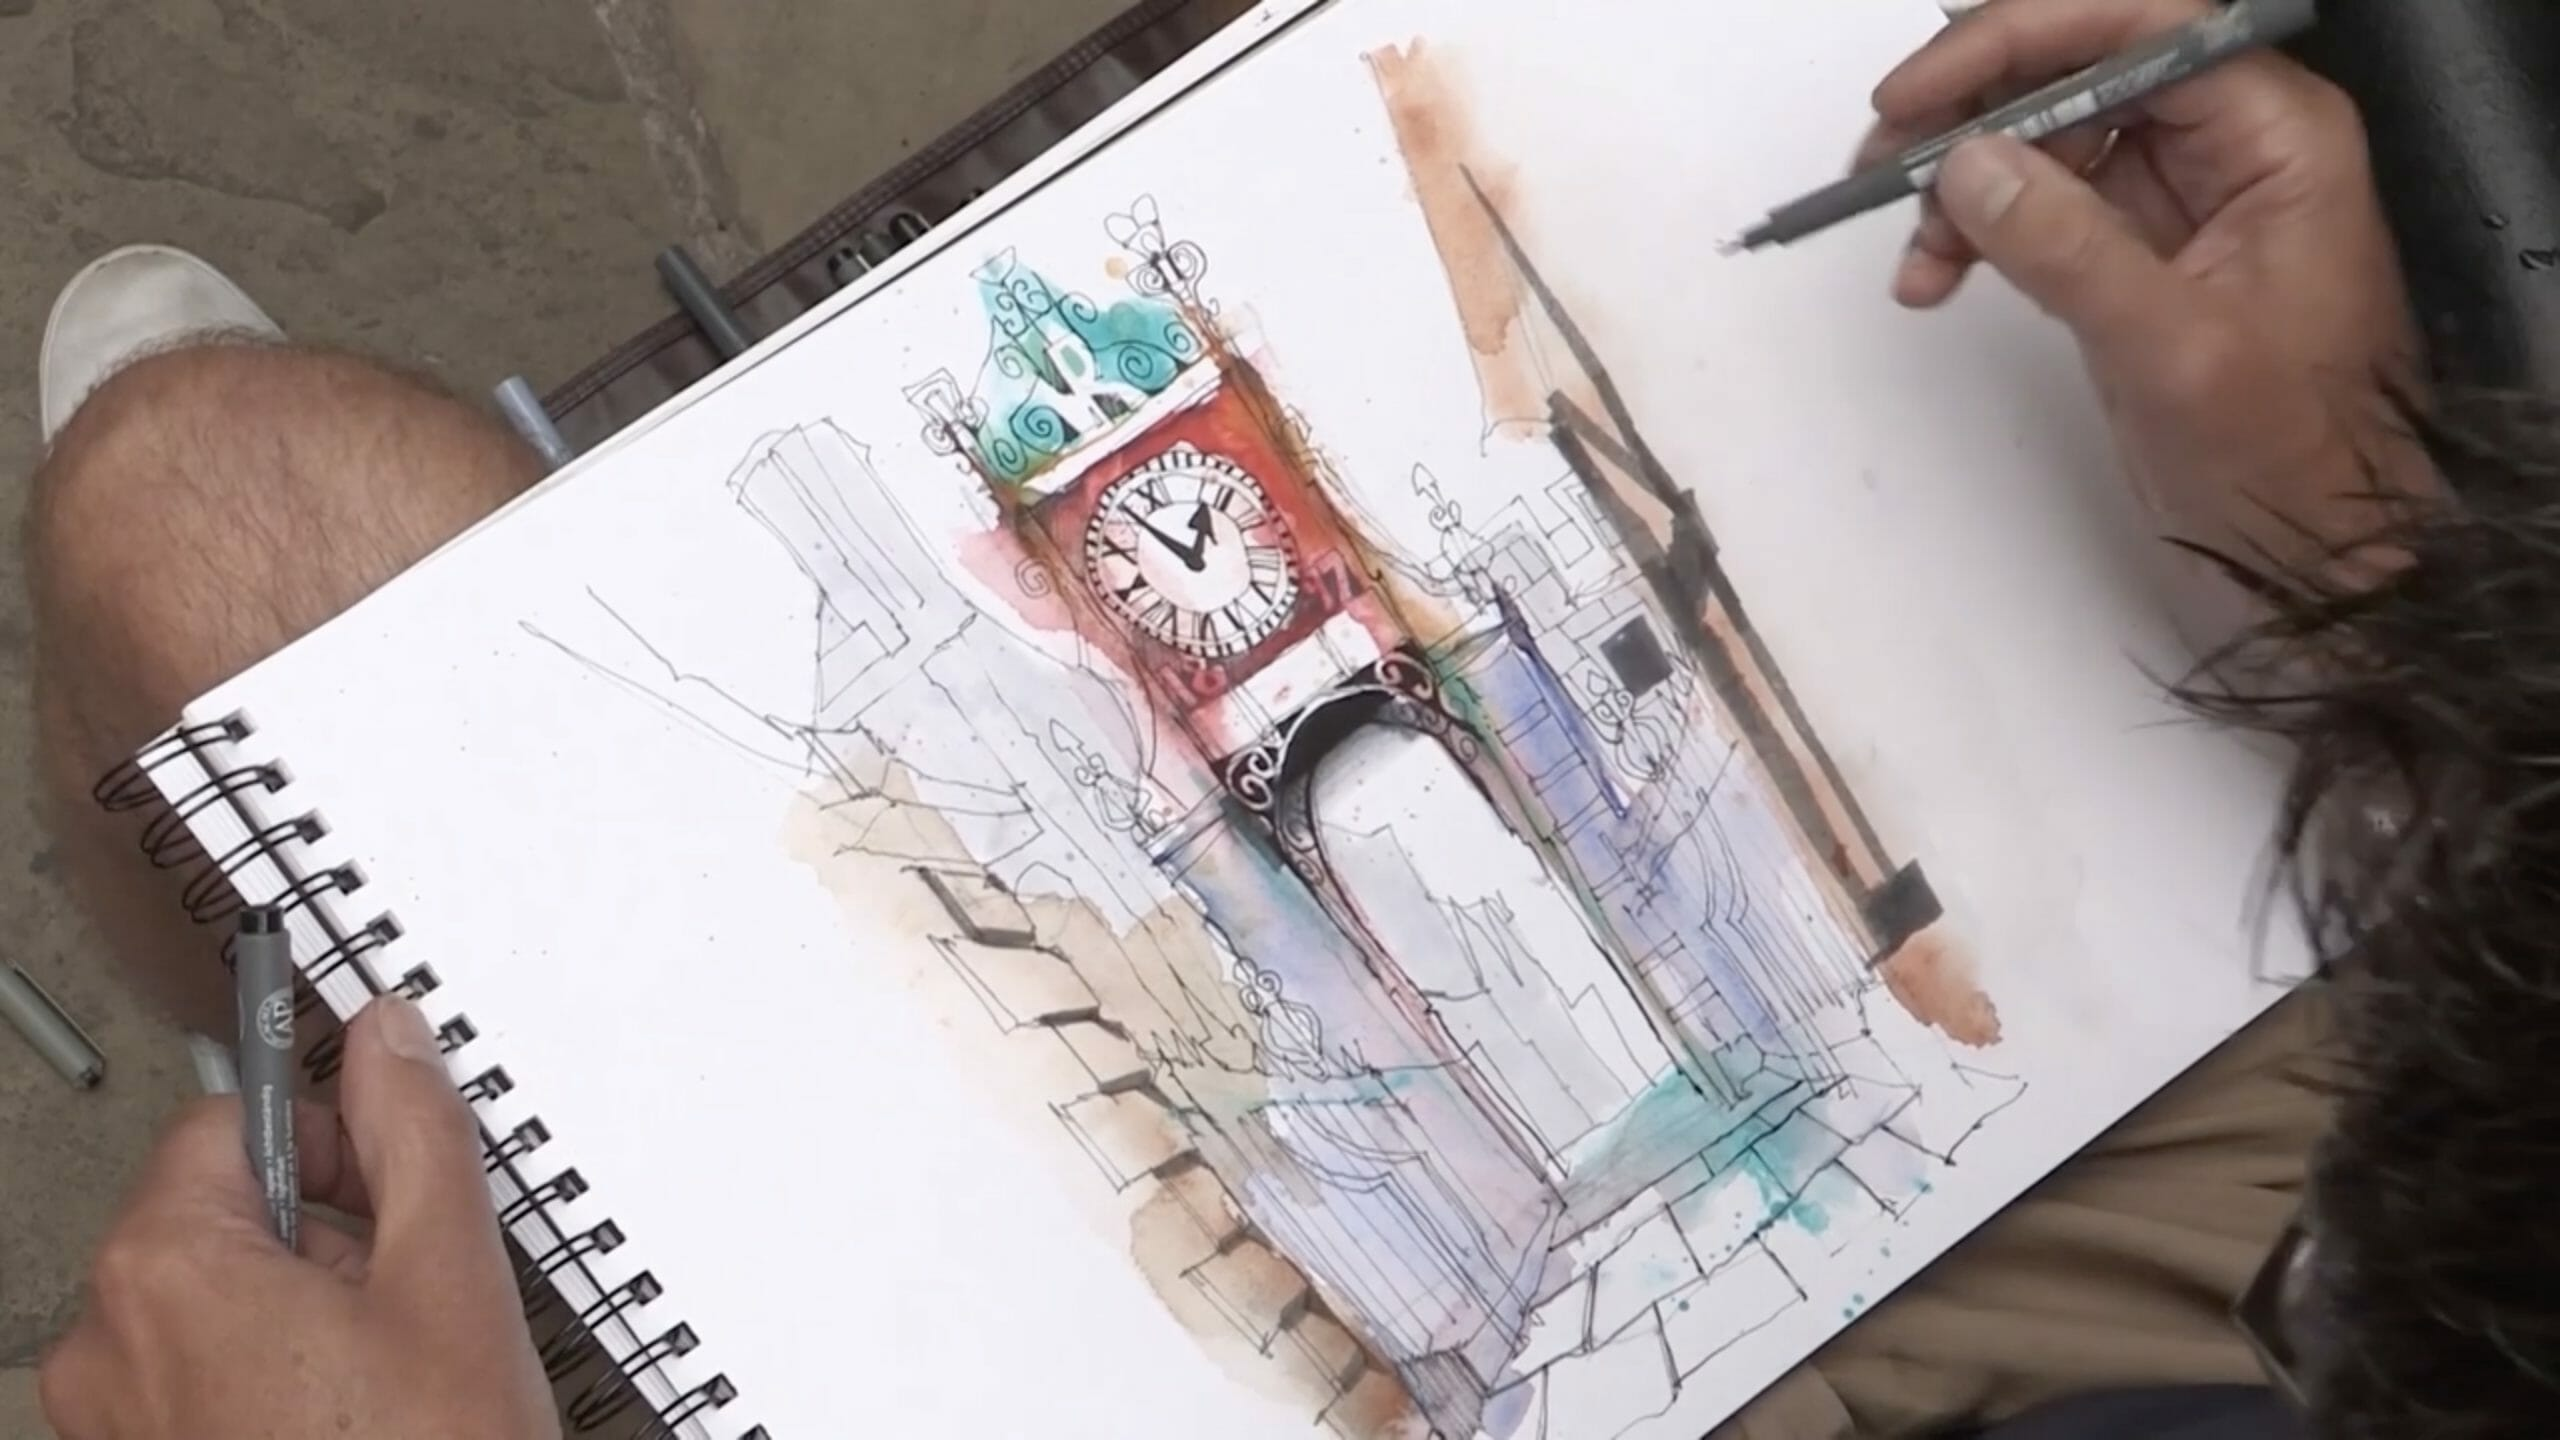 art painting sketching pens pencil fine liner urban sketching kit what do i need sketch